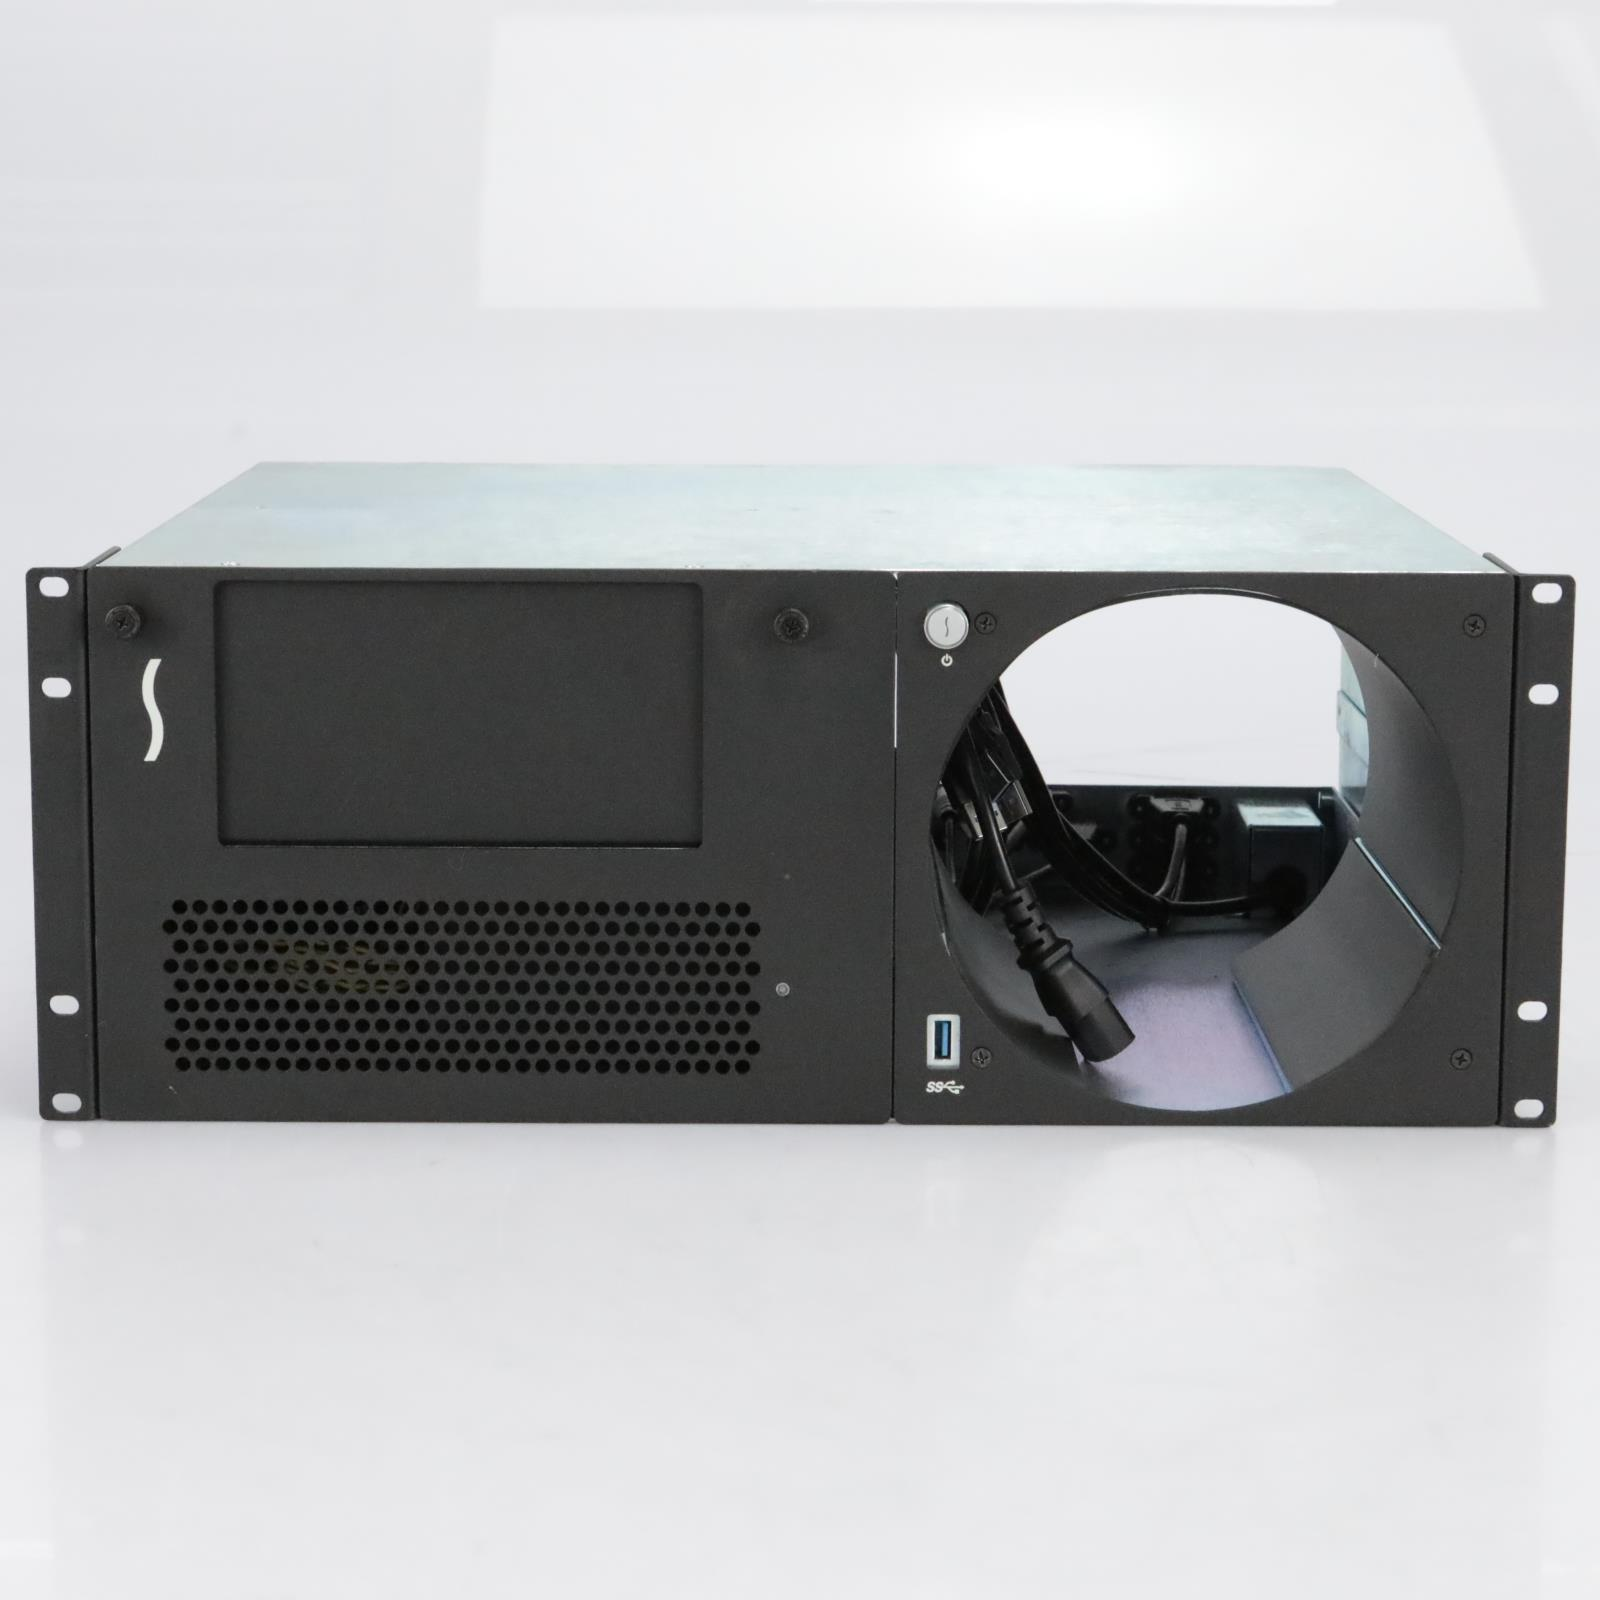 Sonnet xMac Pro Server Echo Express III Chassis PCIe Thunderbolt #41060